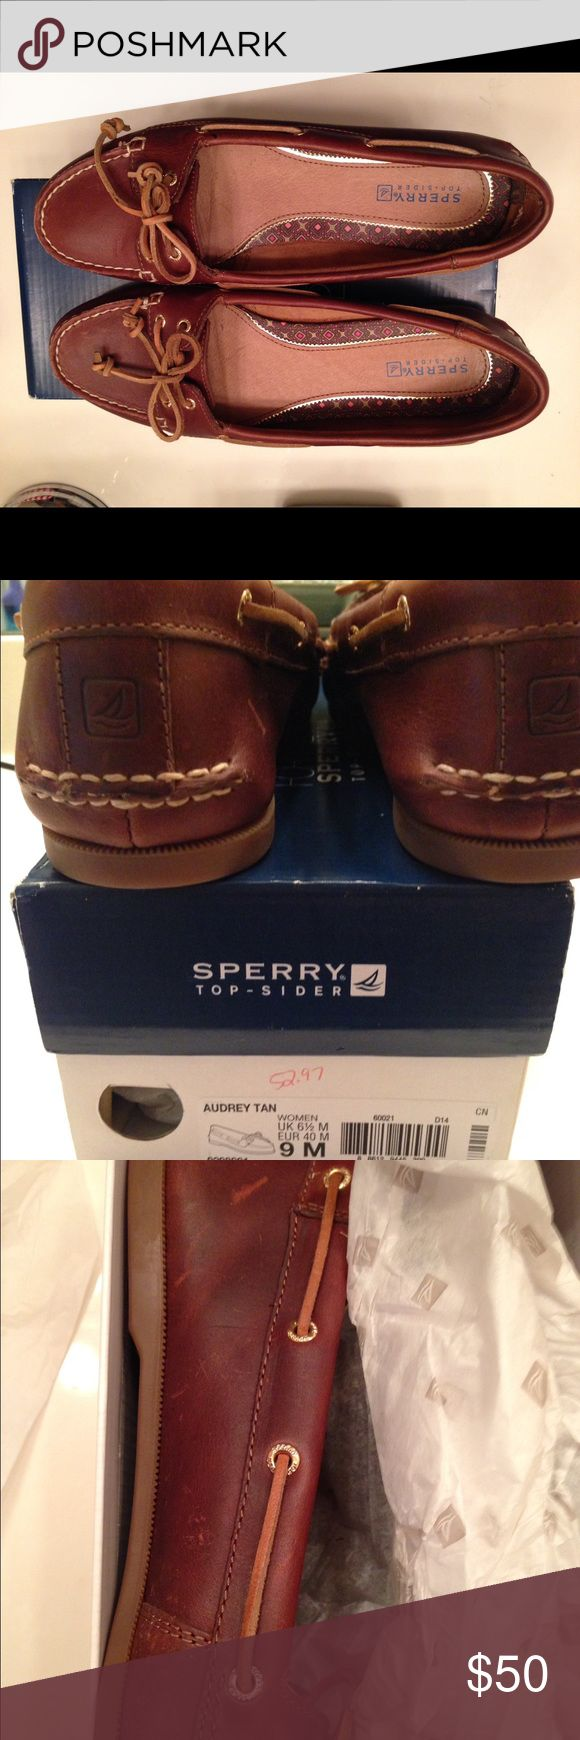 Sperry boat shoes New in Box New in box Sperry boat shoes. Bought on sale, however never wore them. Sperry Top-Sider Shoes Flats & Loafers